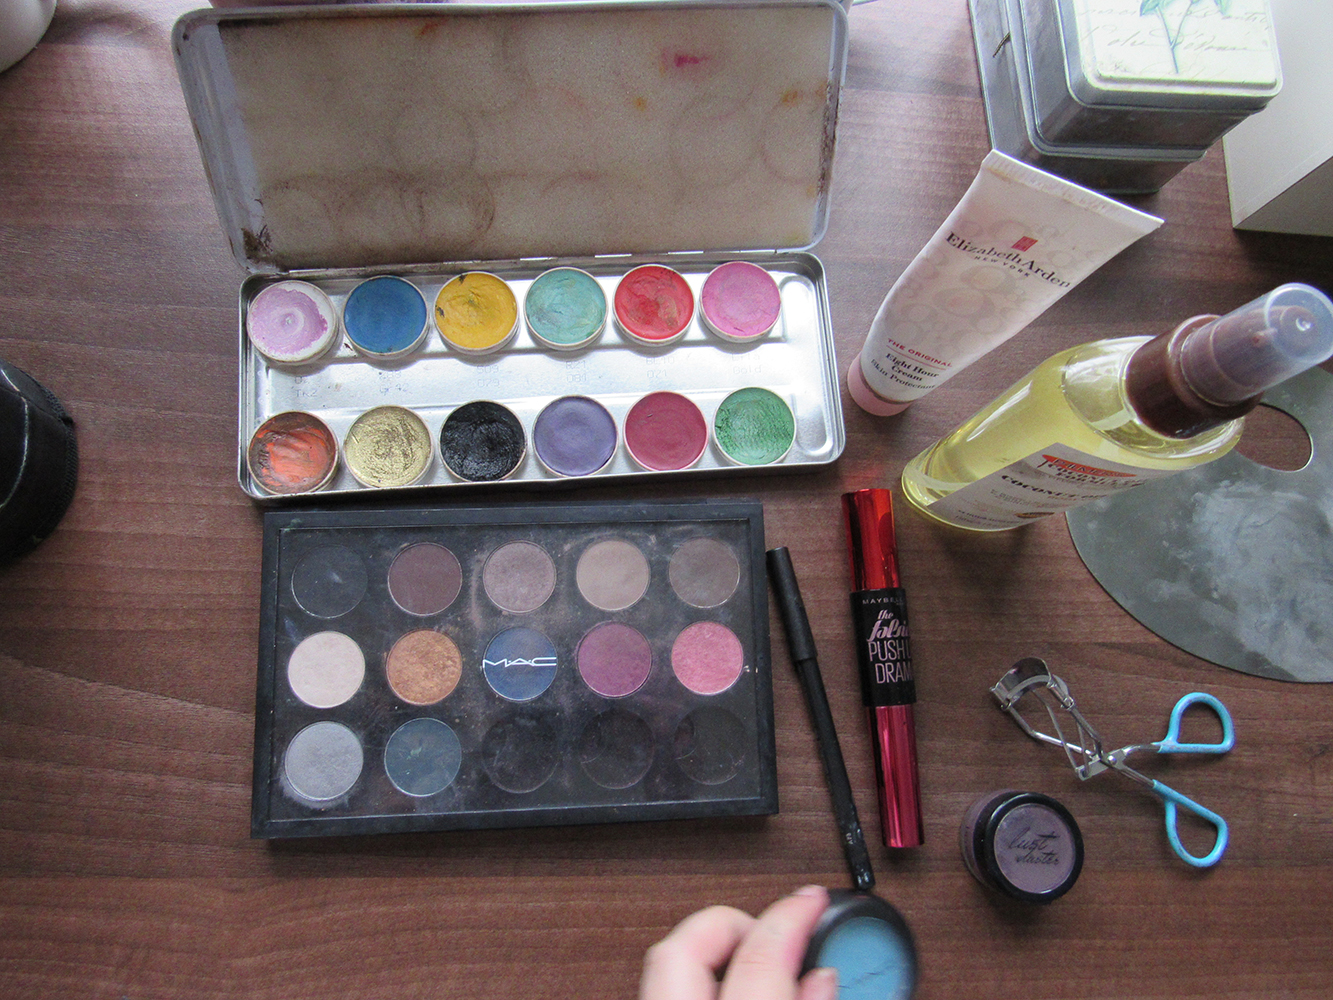 Makeup brushes, eyeshadows and other utensils on a table